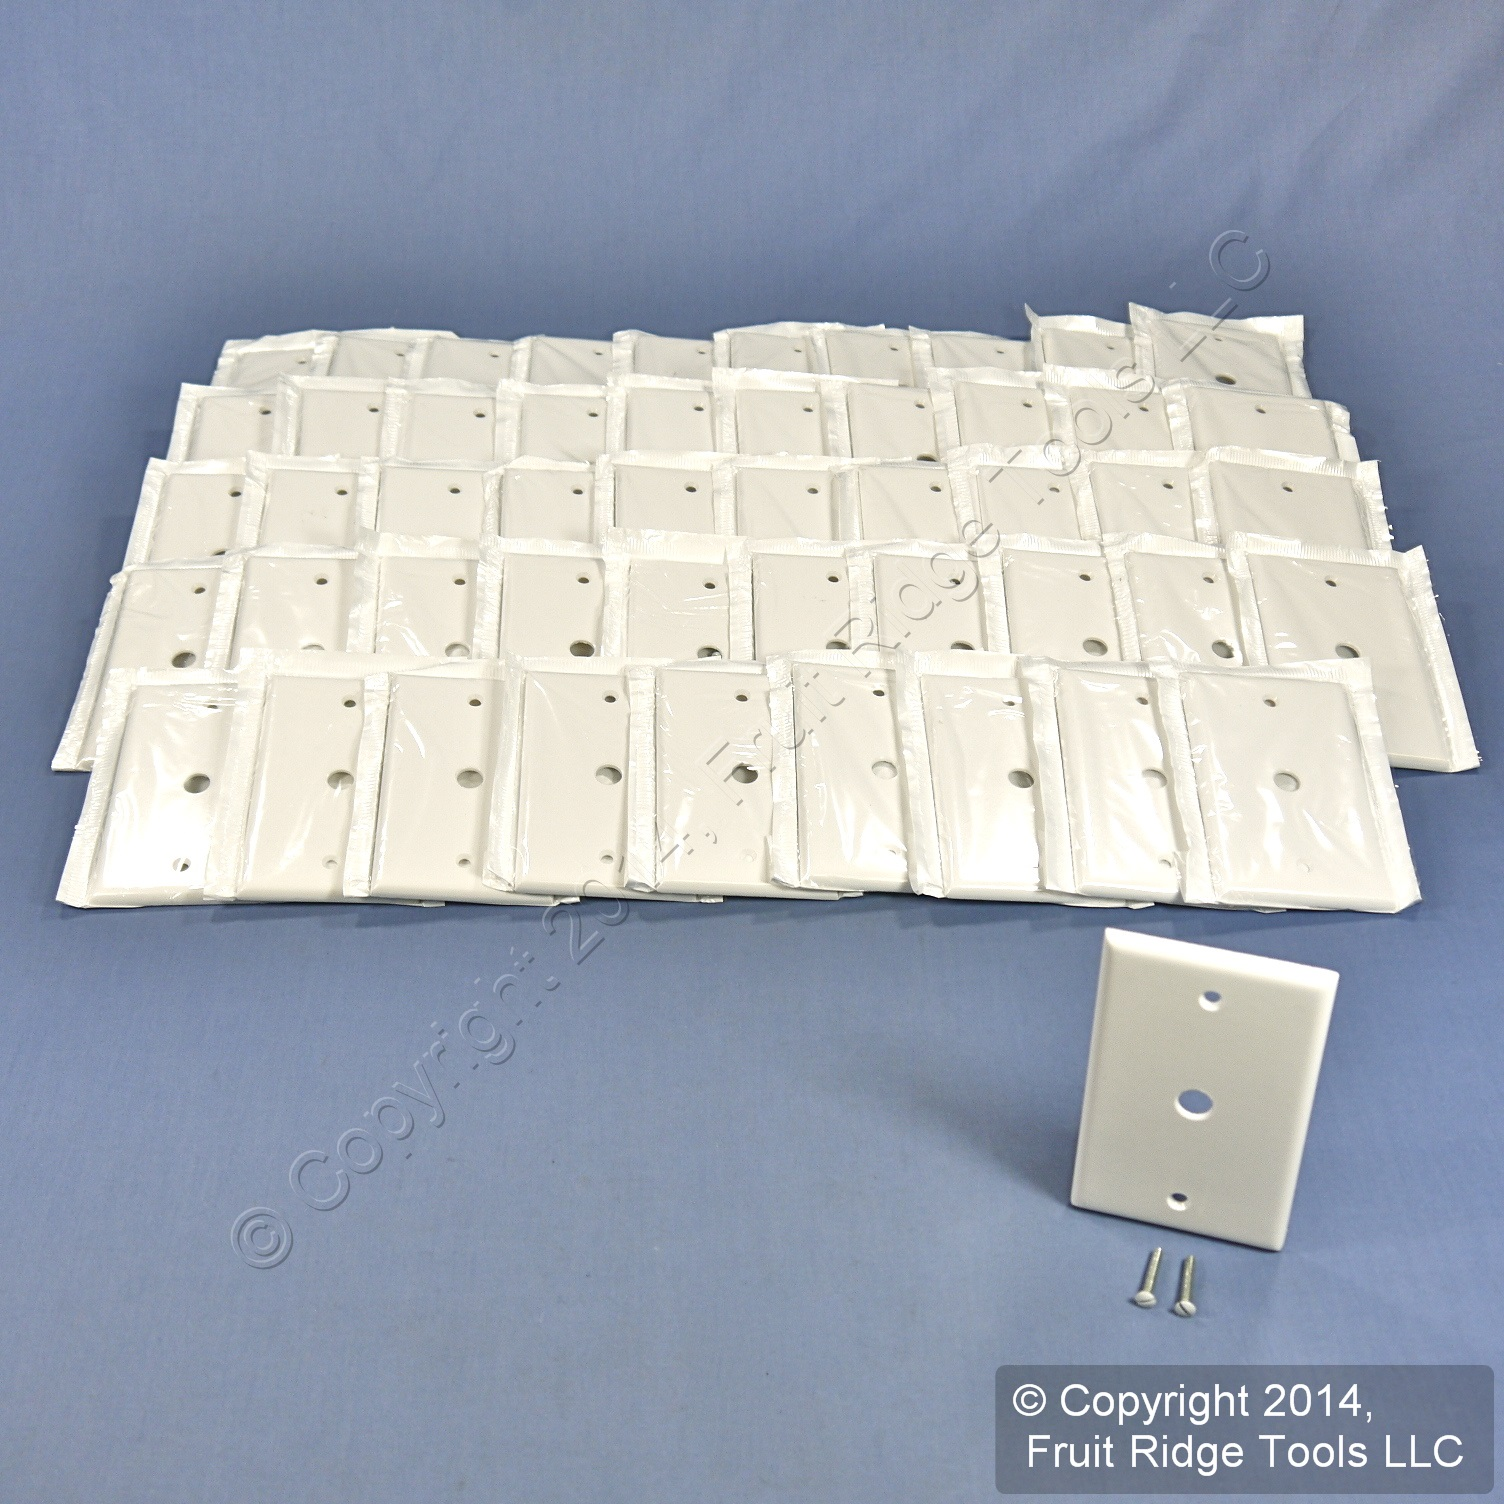 50 leviton white phone cable wallplate telephone cover plates 406 hole 88013 ebay. Black Bedroom Furniture Sets. Home Design Ideas